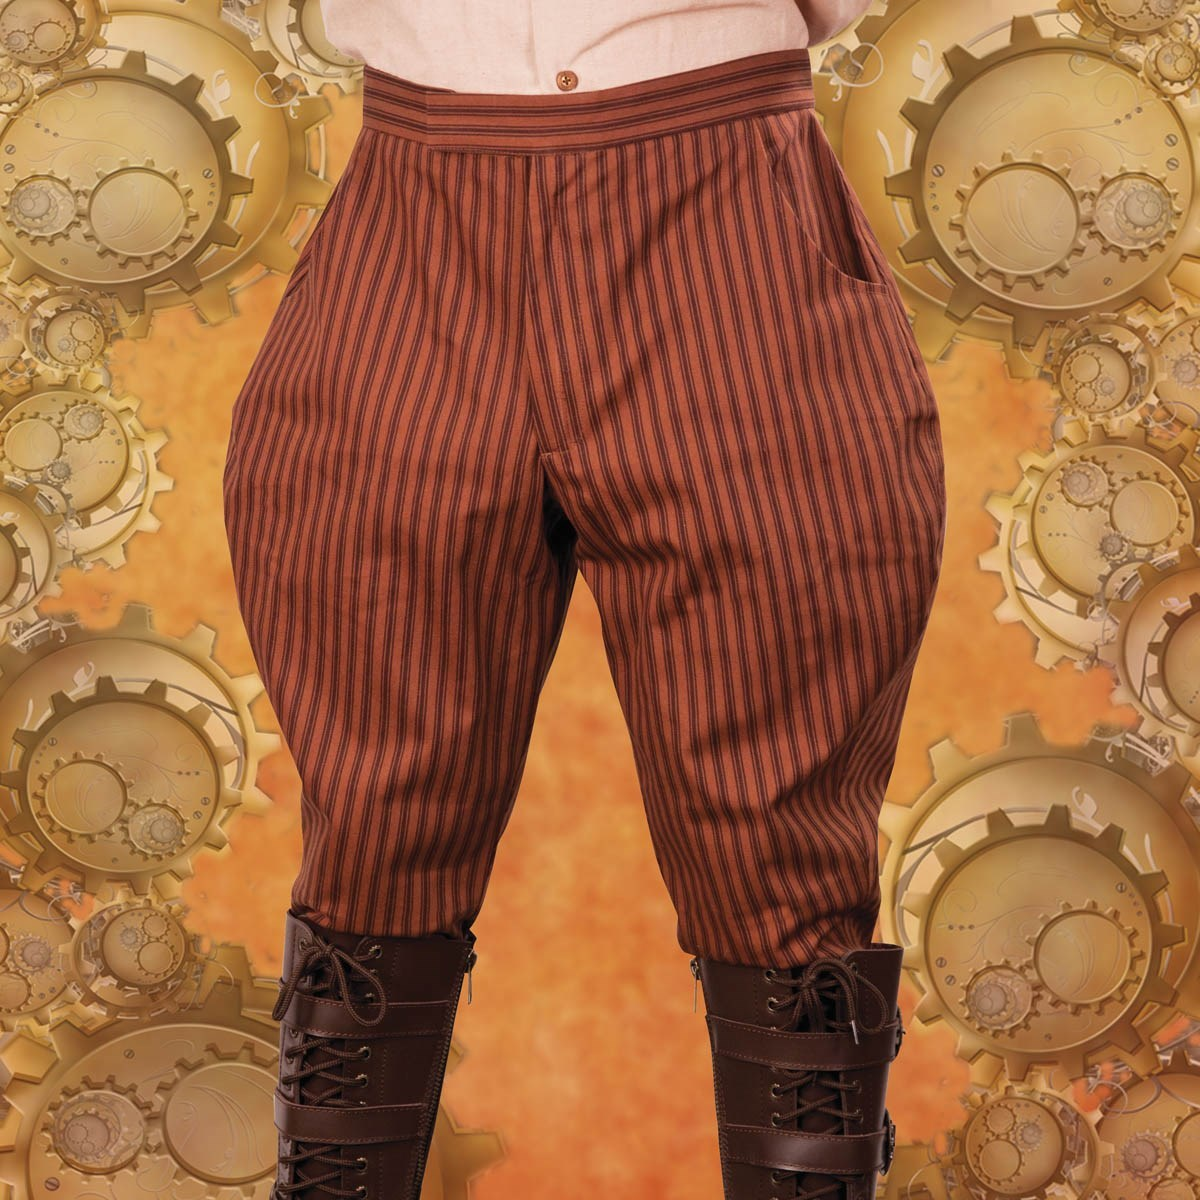 Picture of Striped Jodphur Style Pants